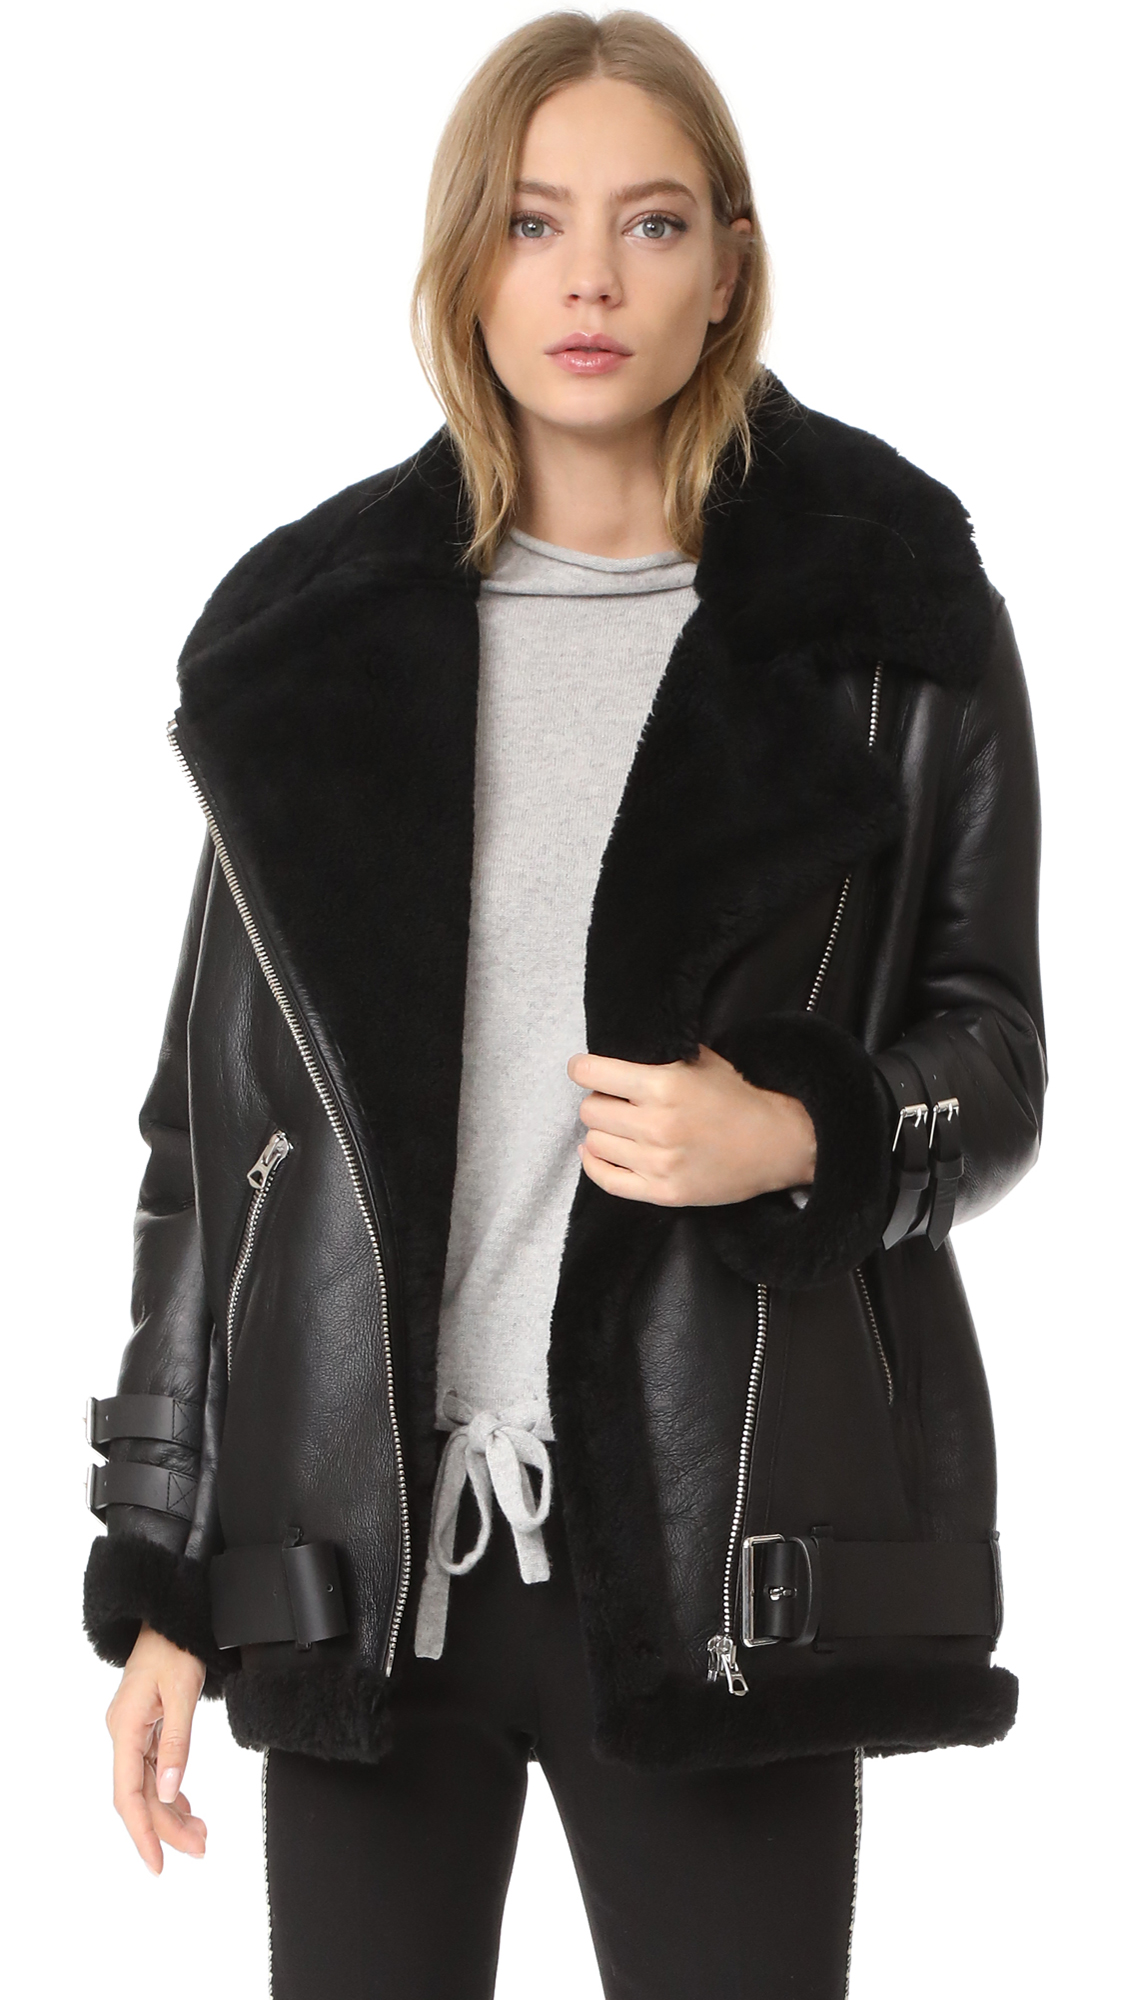 Buy Acne Studios Velocite Shearling Moto Jacket online beautiful Acne Studios Jackets, Coats, Down Jackets